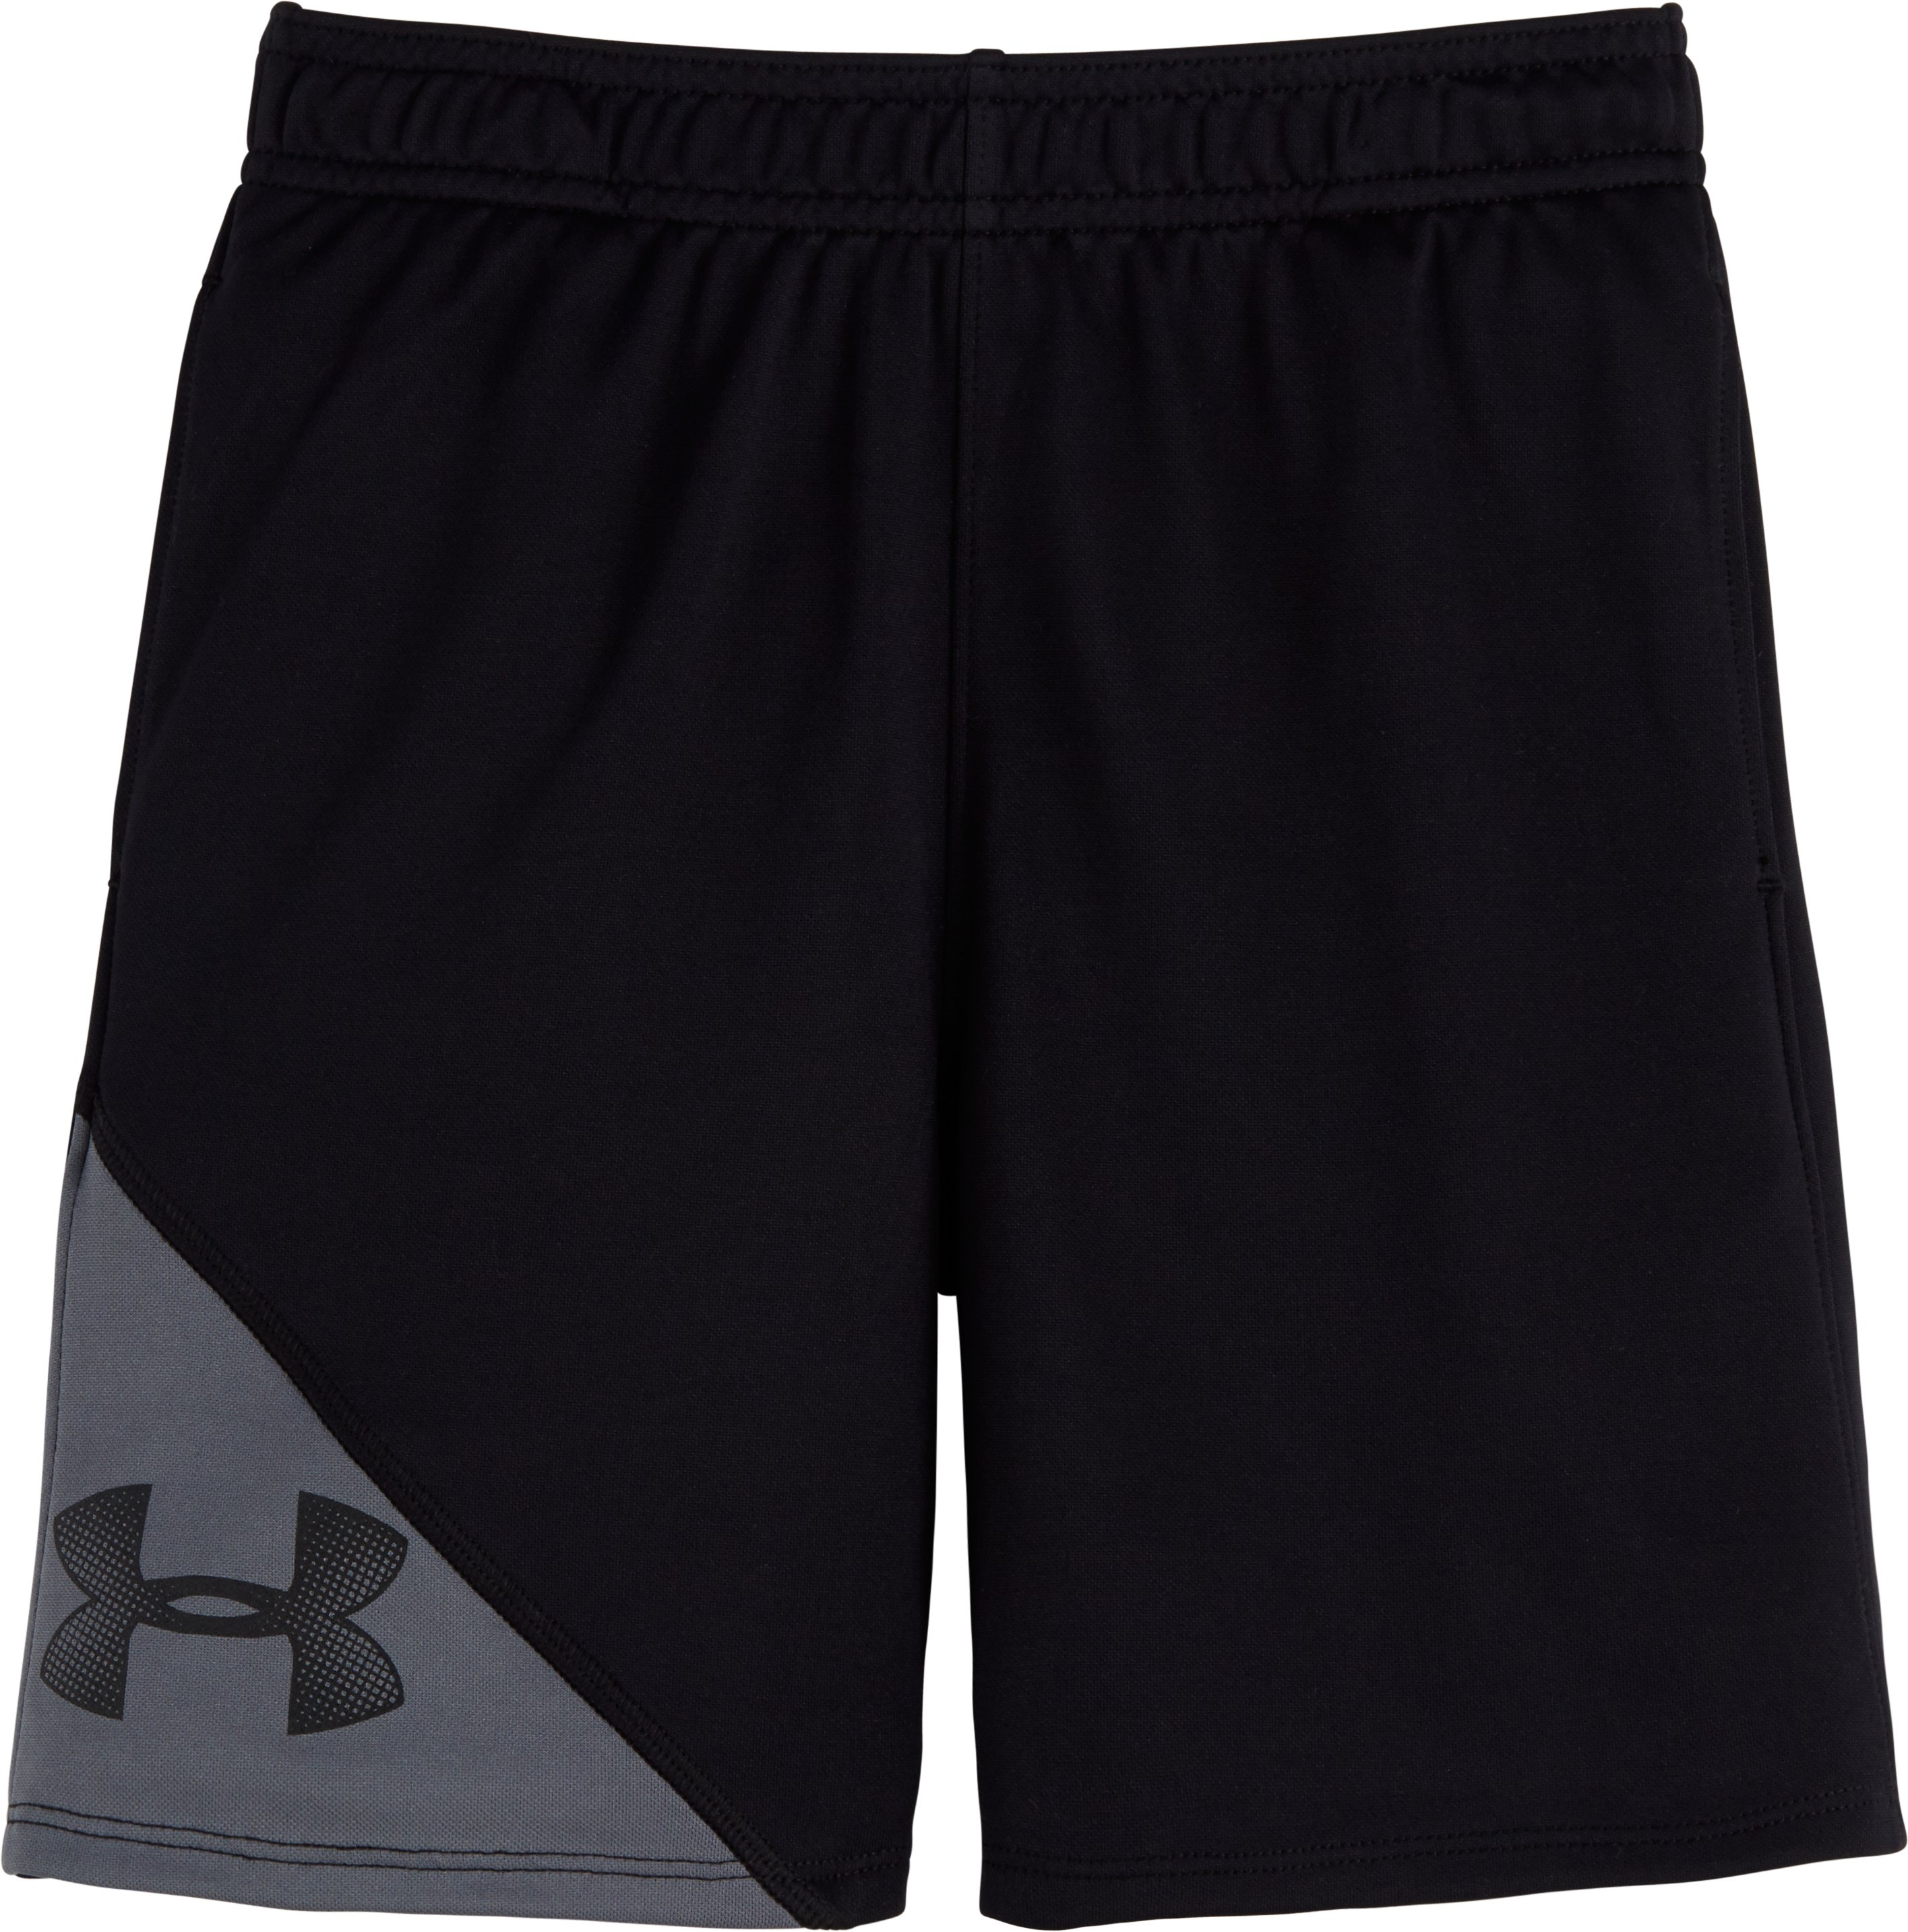 Boys' Toddler UA Prototype Shorts, Black , zoomed image